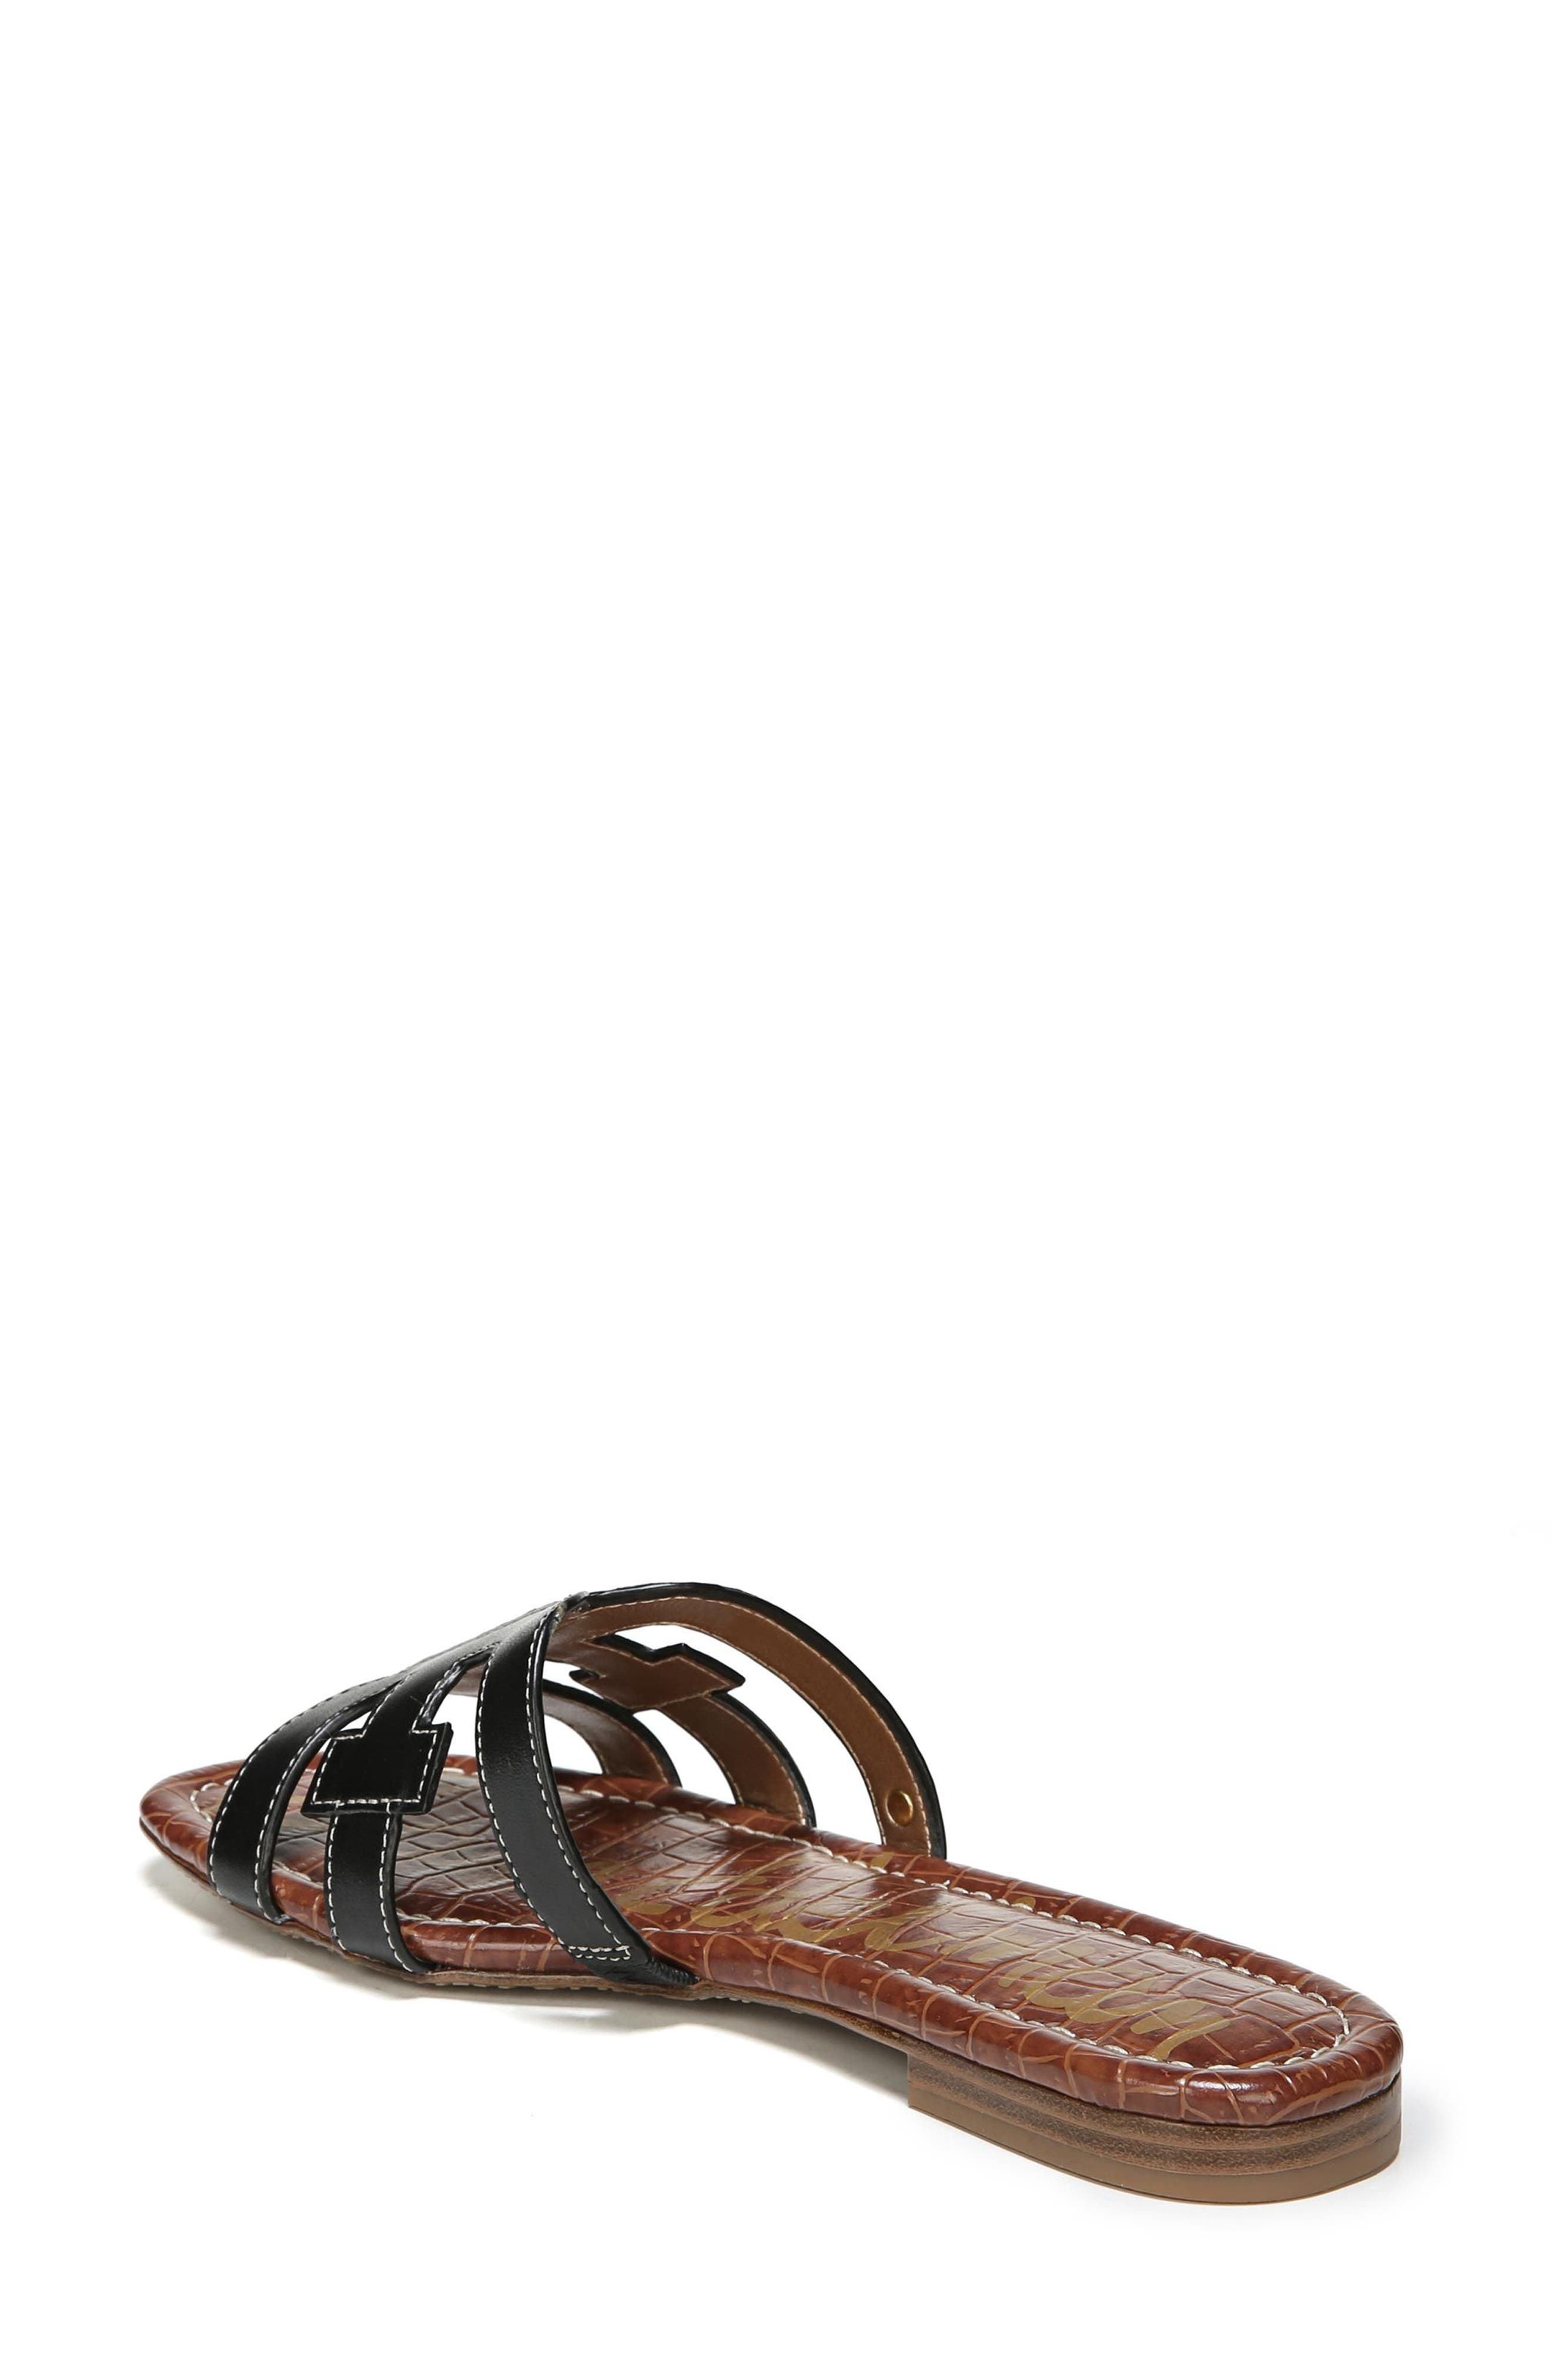 Bay Cutout Slide Sandal,                             Alternate thumbnail 2, color,                             BLACK LEATHER